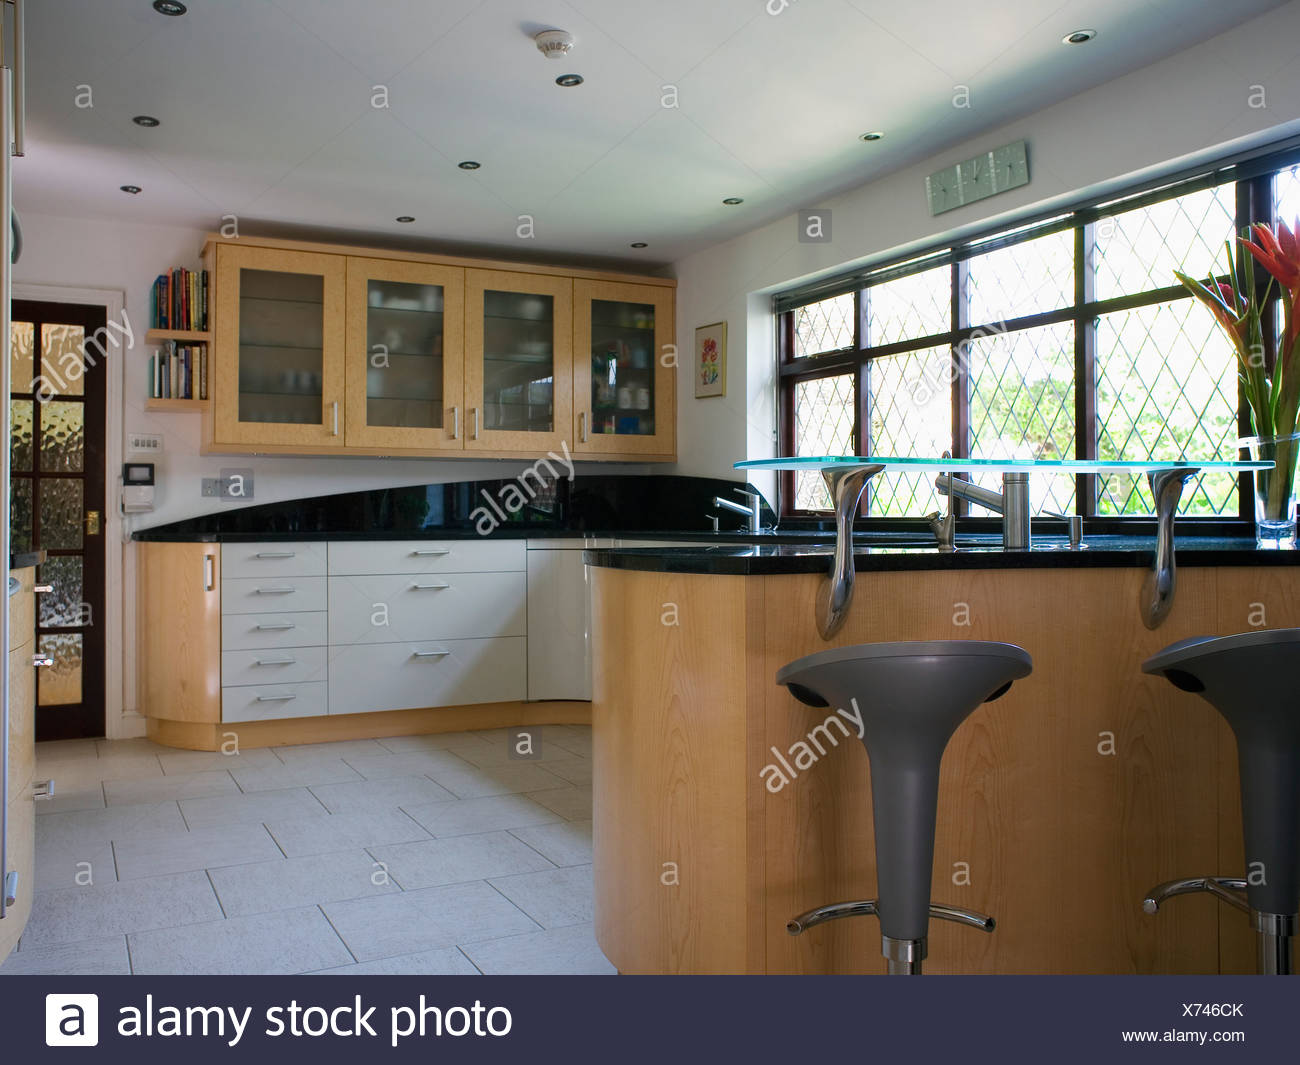 Cream ceramic floor tiles in modern country kitchen with ...